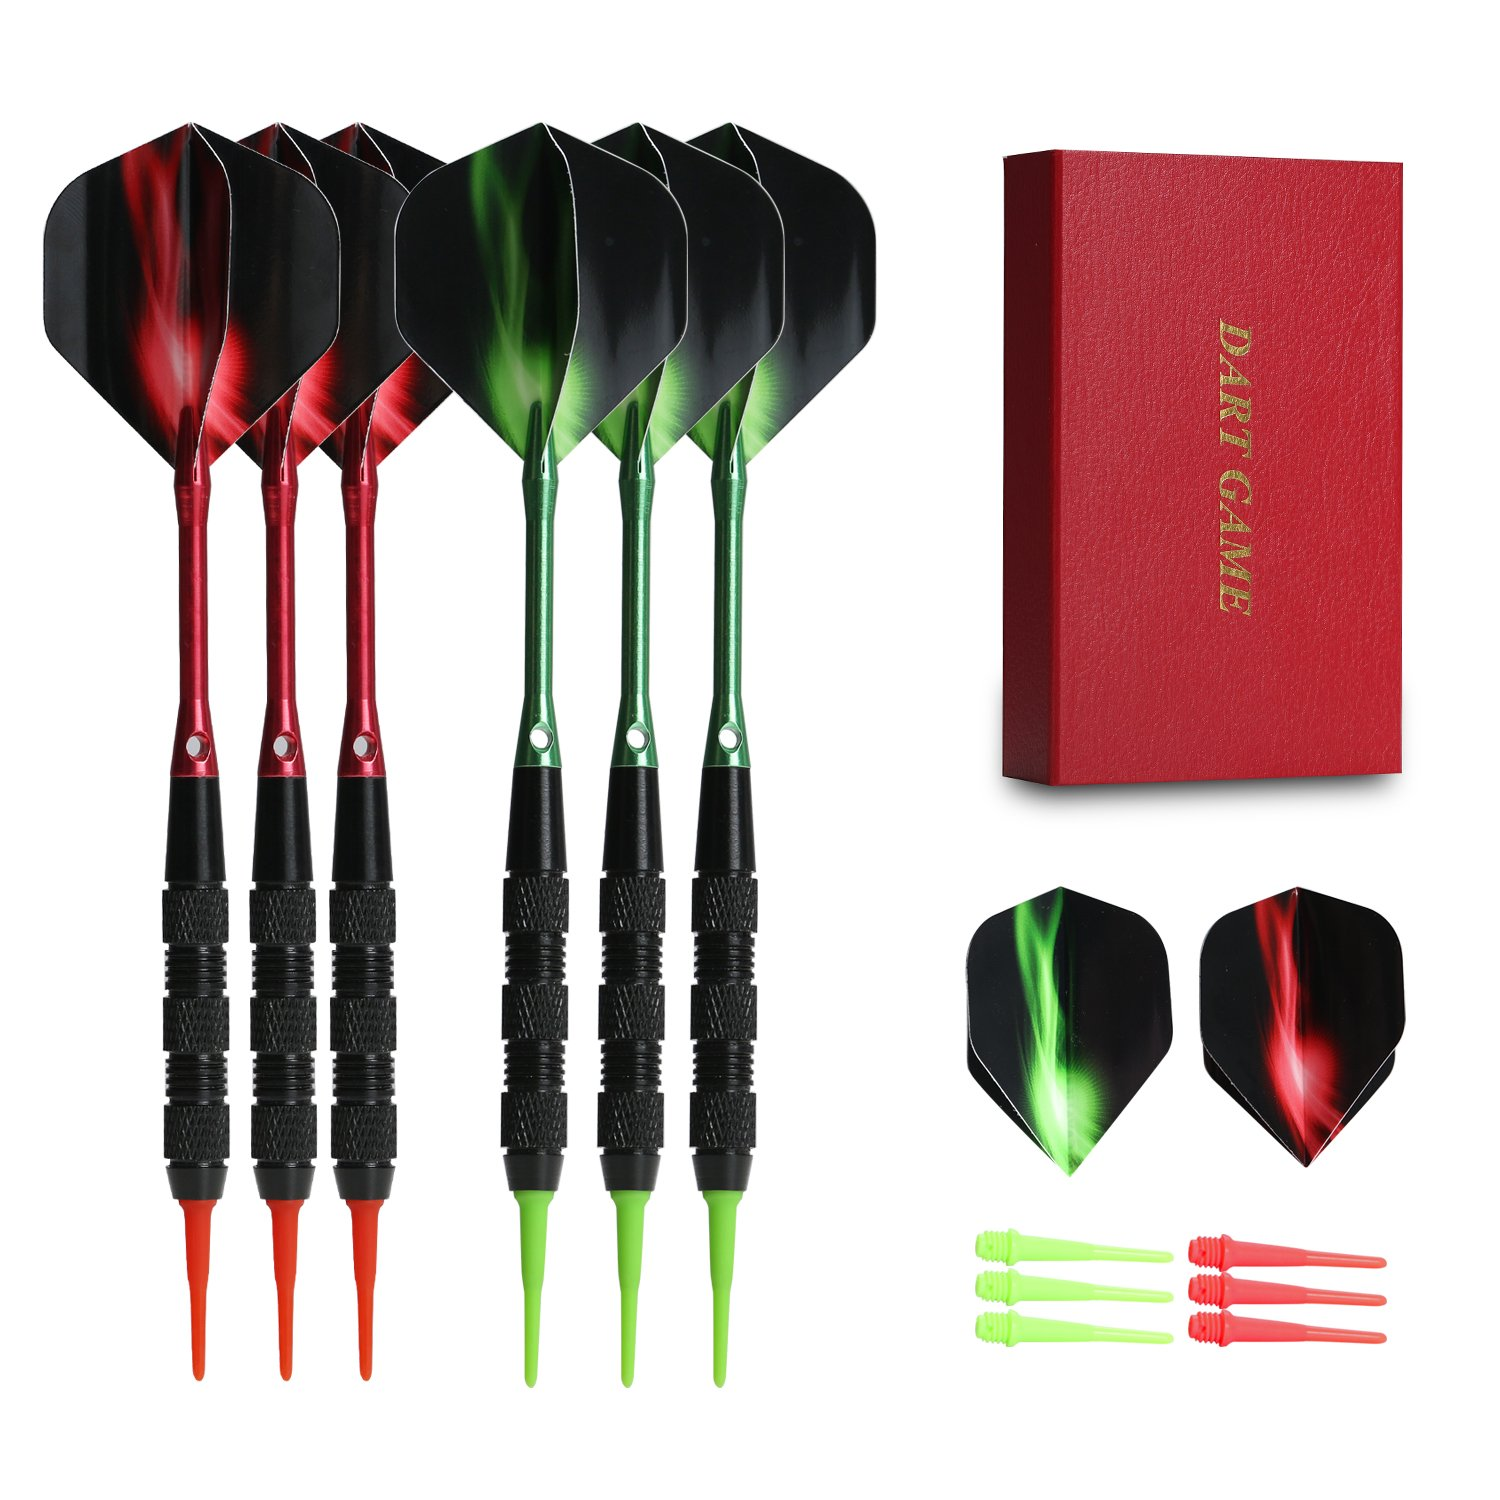 Vopa Professional 17 Grams Soft Tip Darts Set with Plastic Tip, 2 Styles Dart Flights Aluminum Dart Shafts 12 Soft Tip Points for Electronic Dartboard